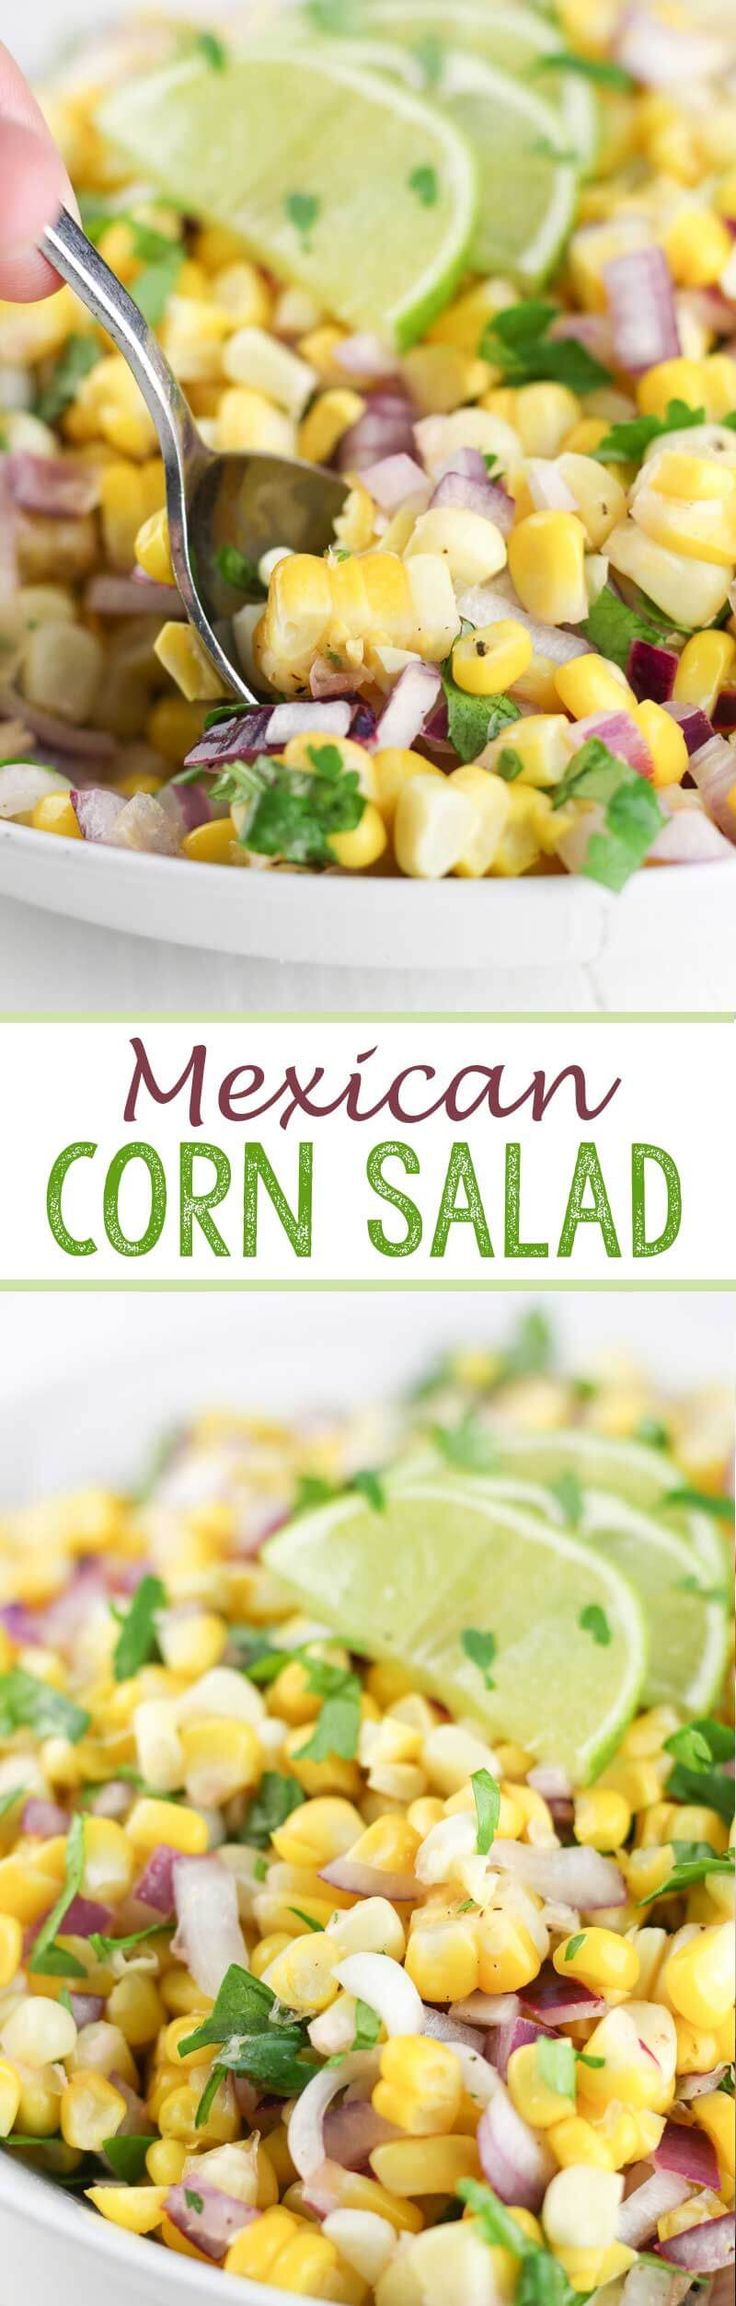 Grilled Corn Salad - YouTube